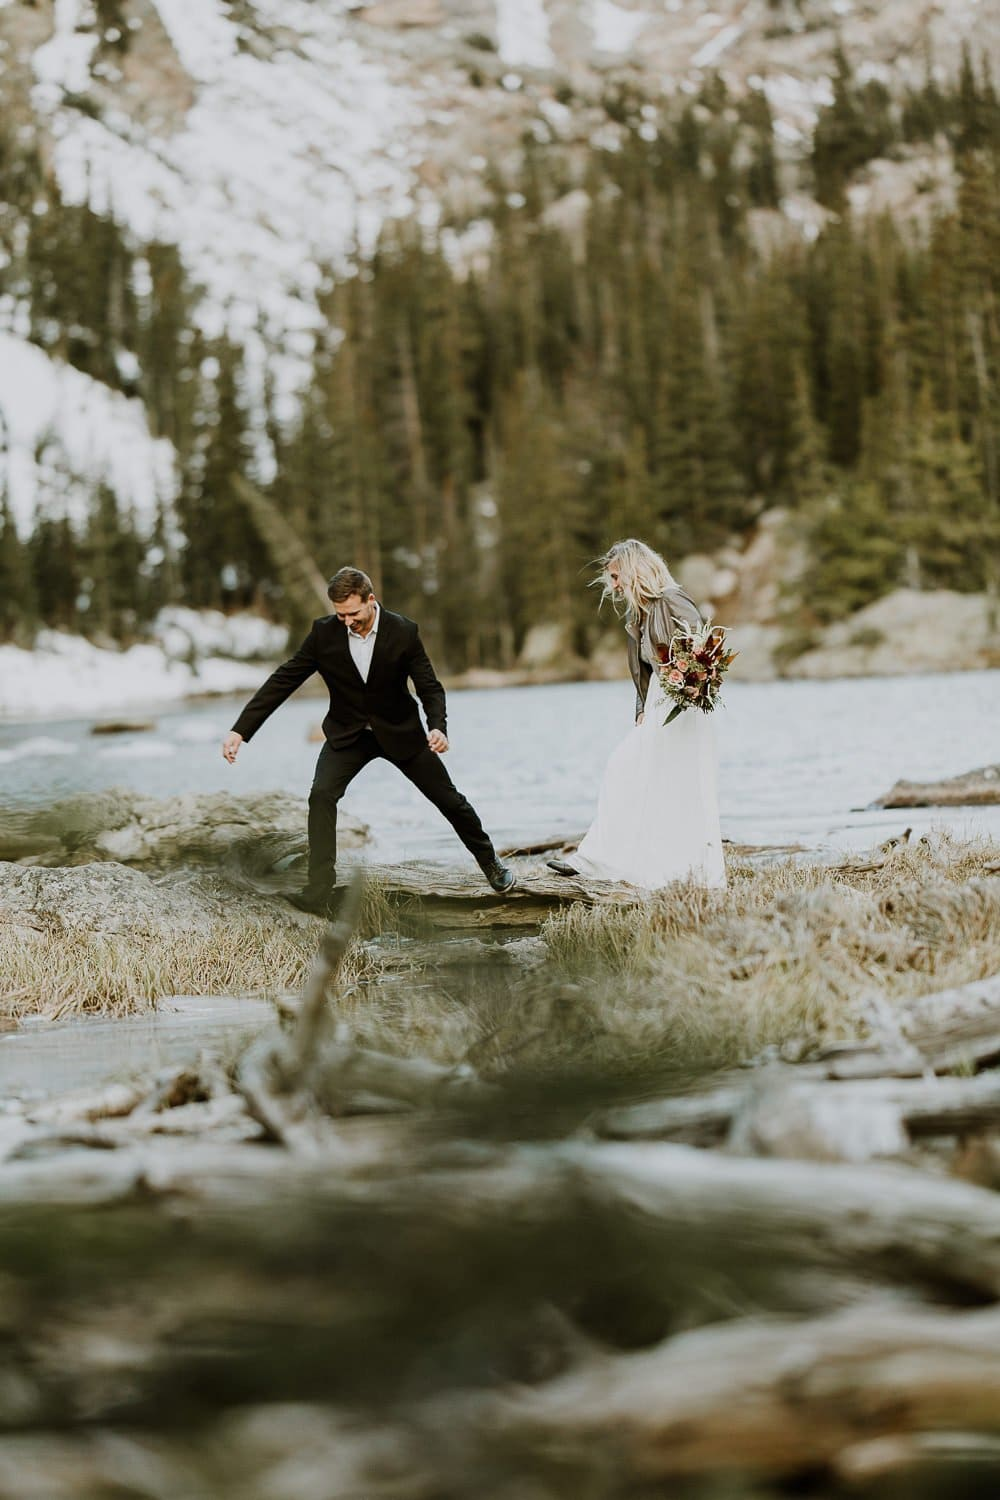 ROCKY MOUNTAIN ELOPEMENT |DREAM LAKE ELOPEMENT I JUSTYNA E BUTLER PHOTOGRAPHY | ROCKY MOUNTAIN NATIONAL PARK ELOPEMENT |COLORADO MOUNTAIN ELOPEMENT PHOTOGRAPHER